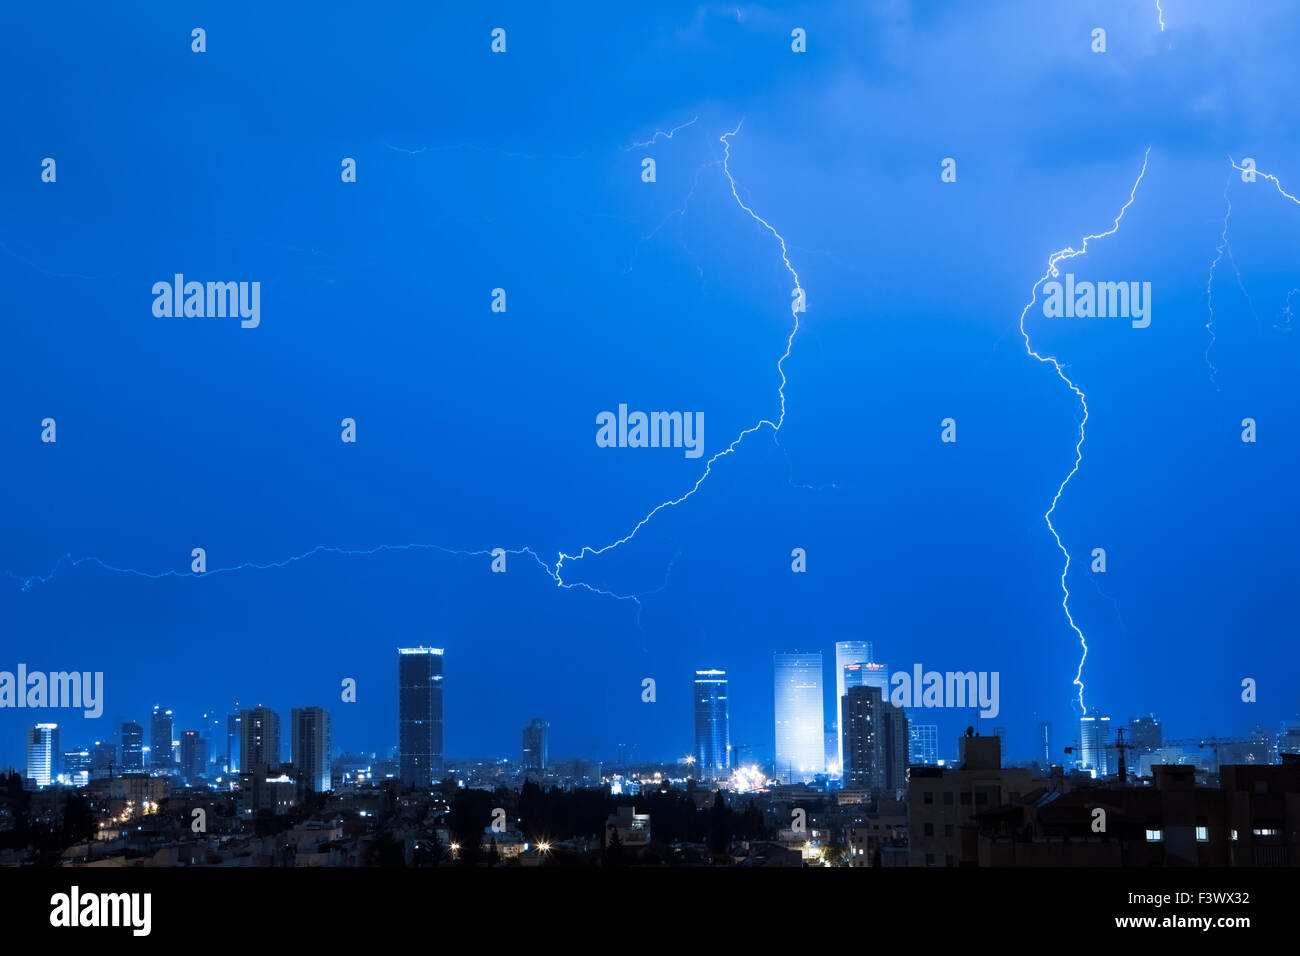 Lightning over a Tel aviv city - Stock Image